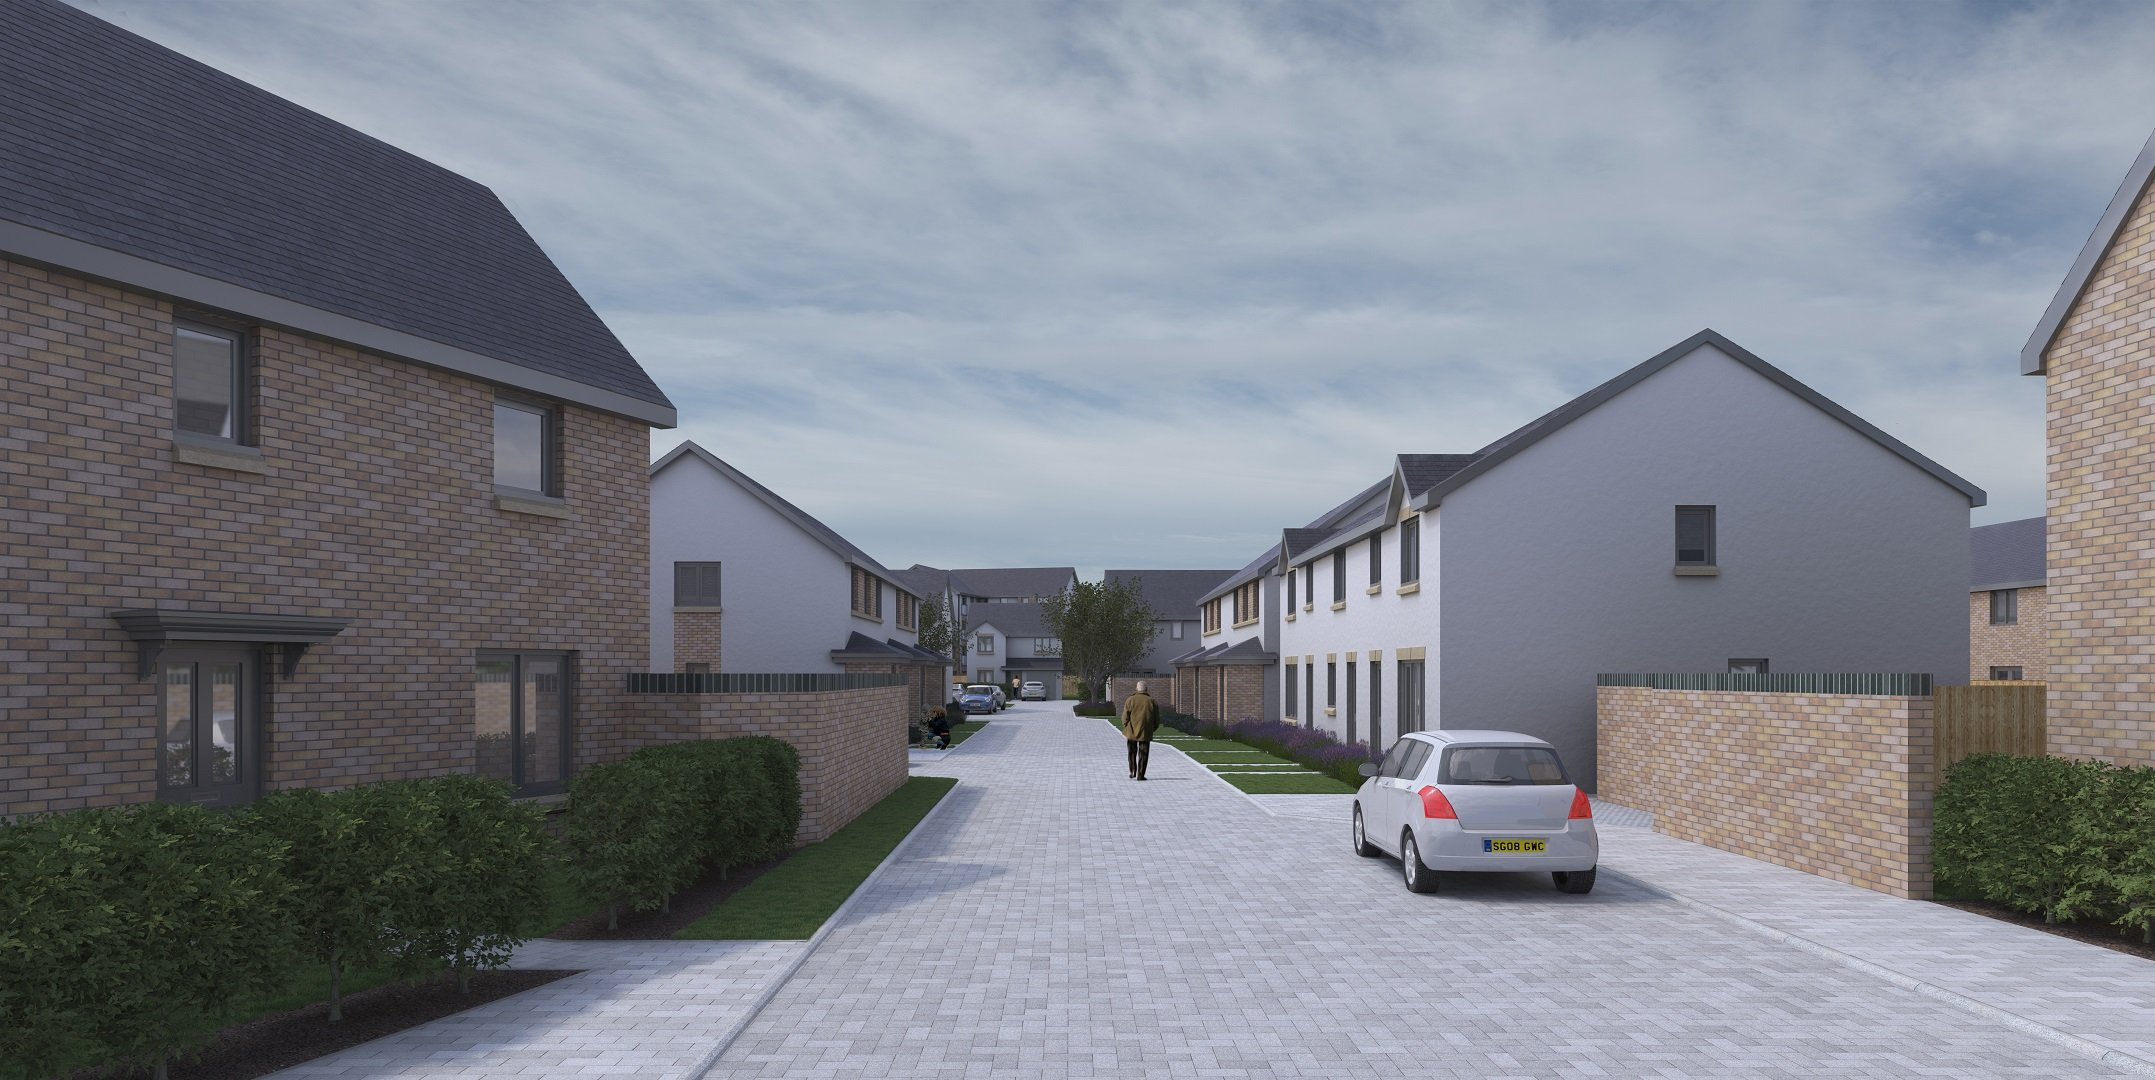 Street view within the development